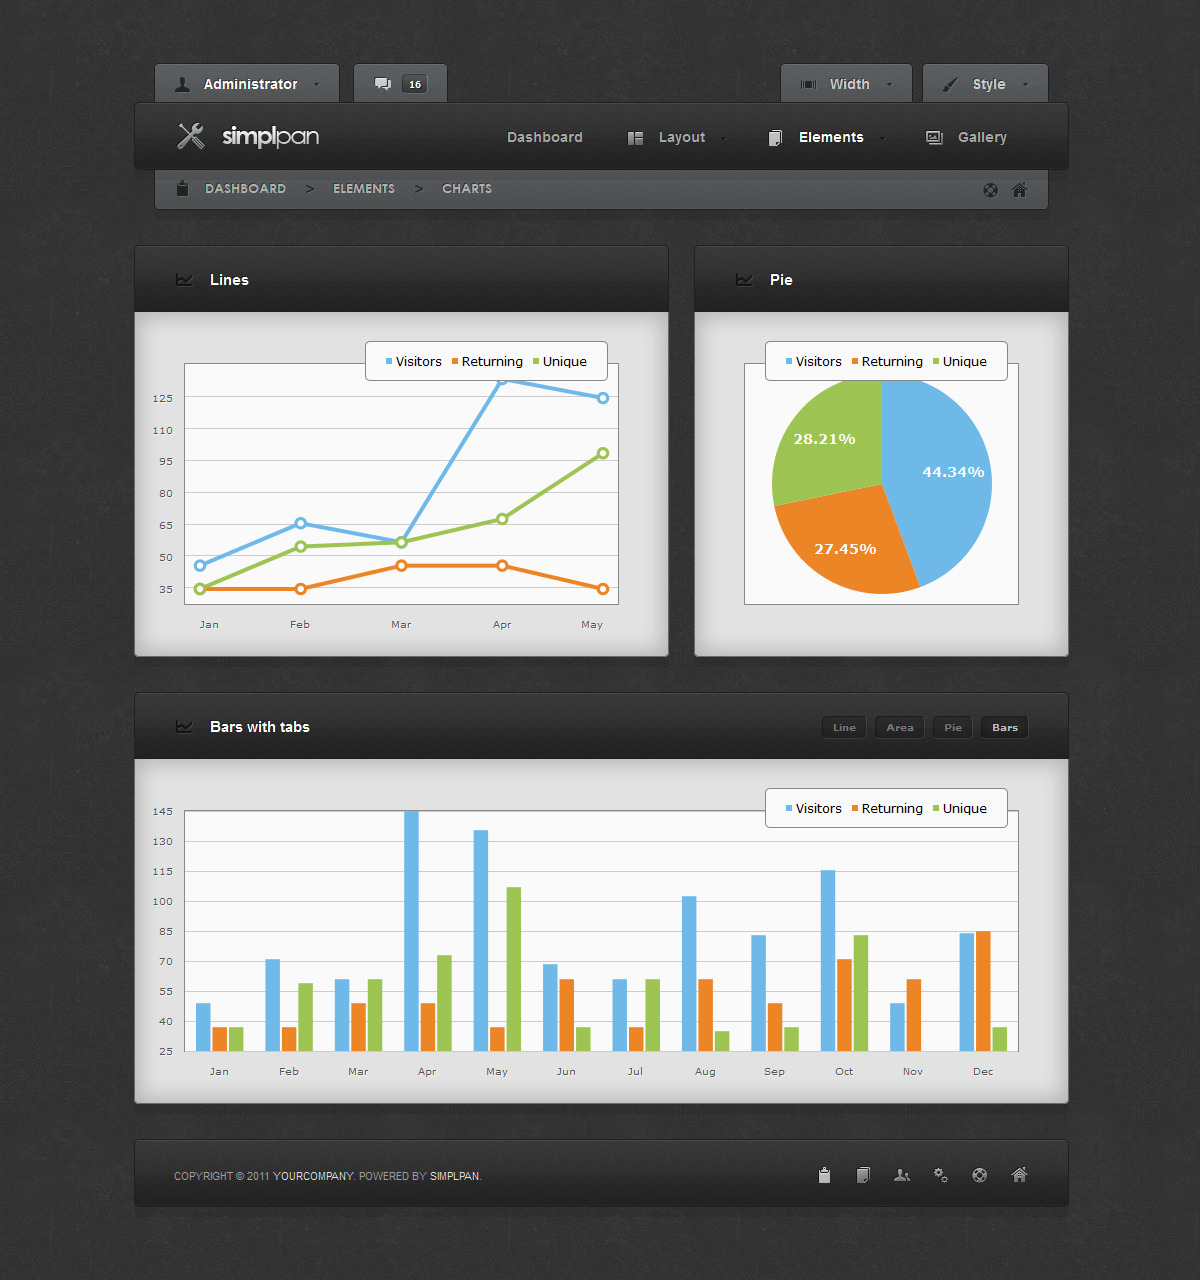 jquery admin panel template free download - simplpan admin panel template download